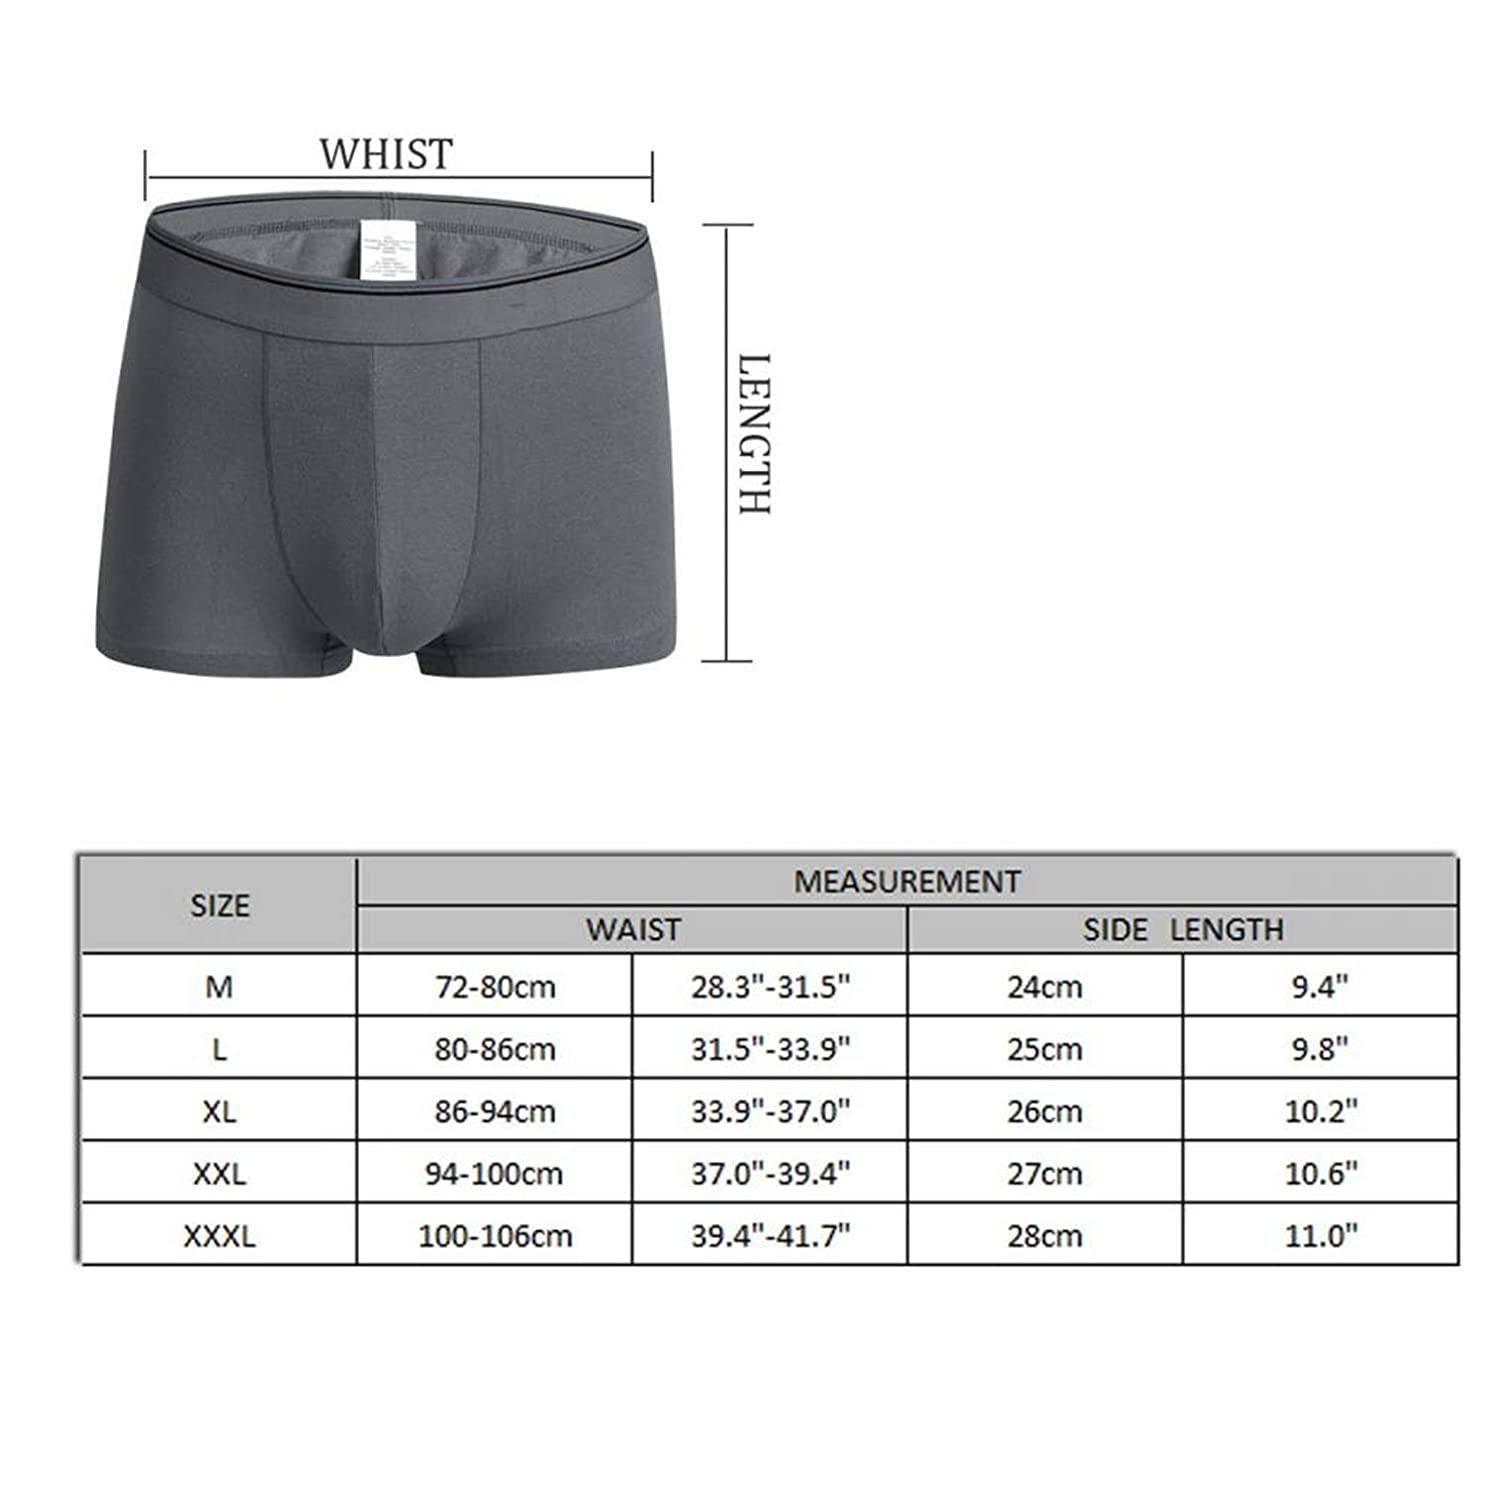 Mens Boxer Brief ball Life Mens Underpants Light Weight Casual Breathable Soft Cotton Large,Black